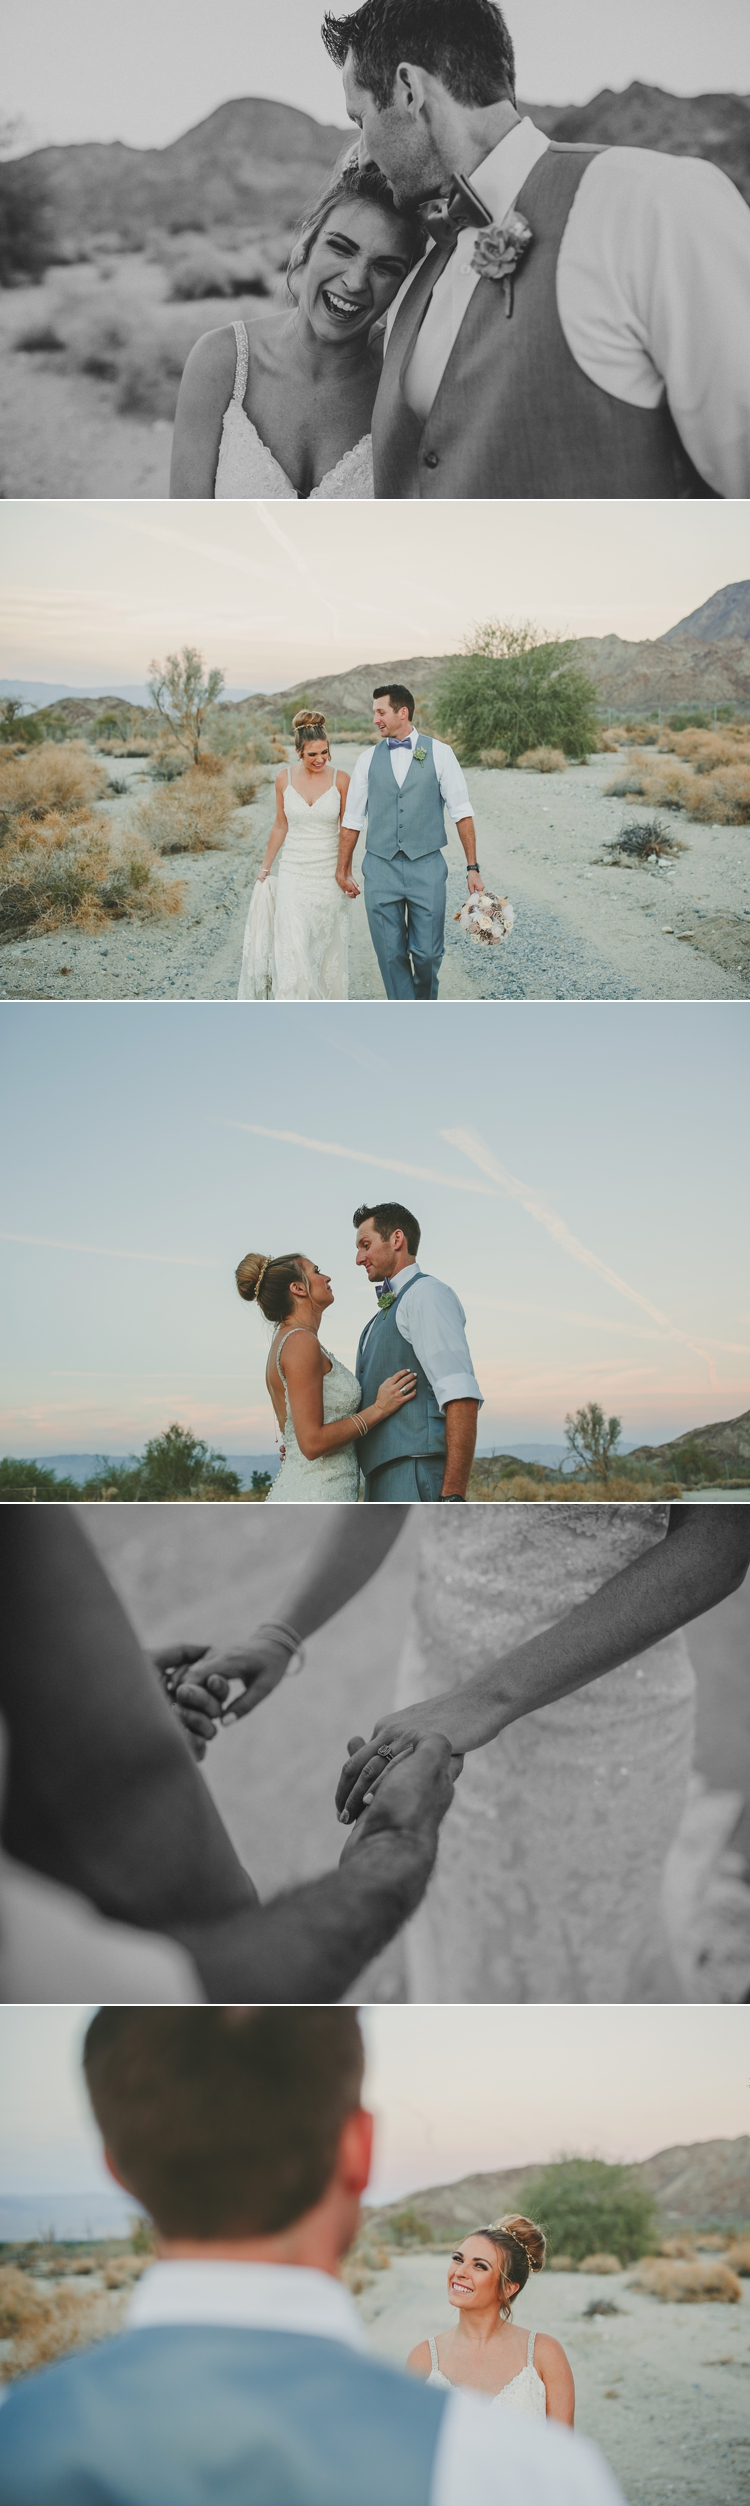 living-desert-zoo-wedding-photos-16